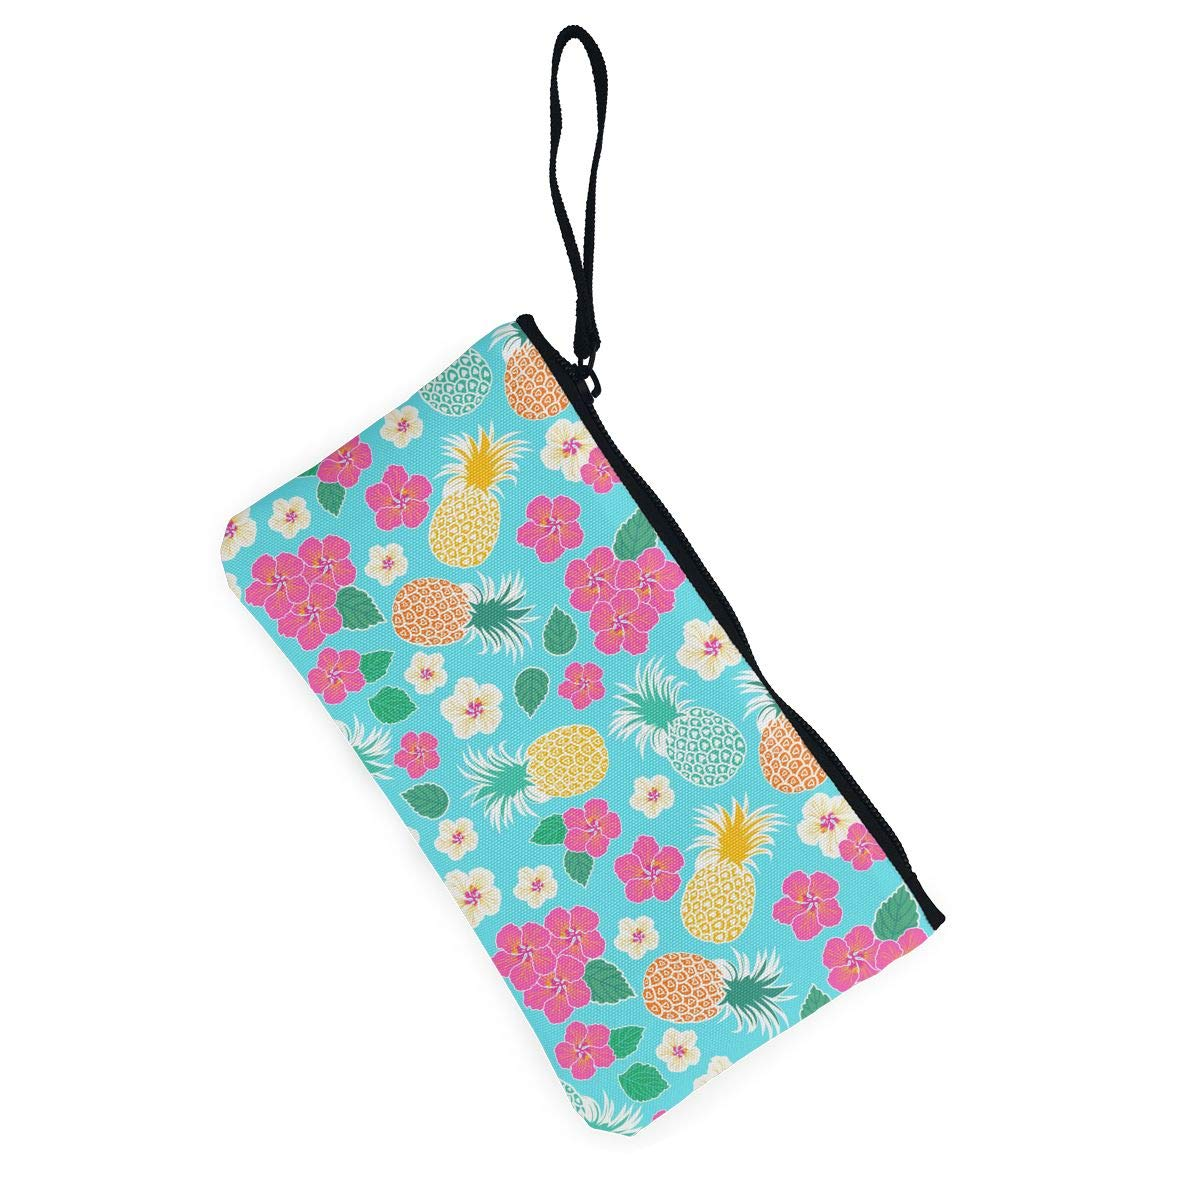 Bk55Oi/&/& Womens Retro Purse Lowers and Pineapple Fruit Pattern Canvas Makeup Bag with Zipper for Women